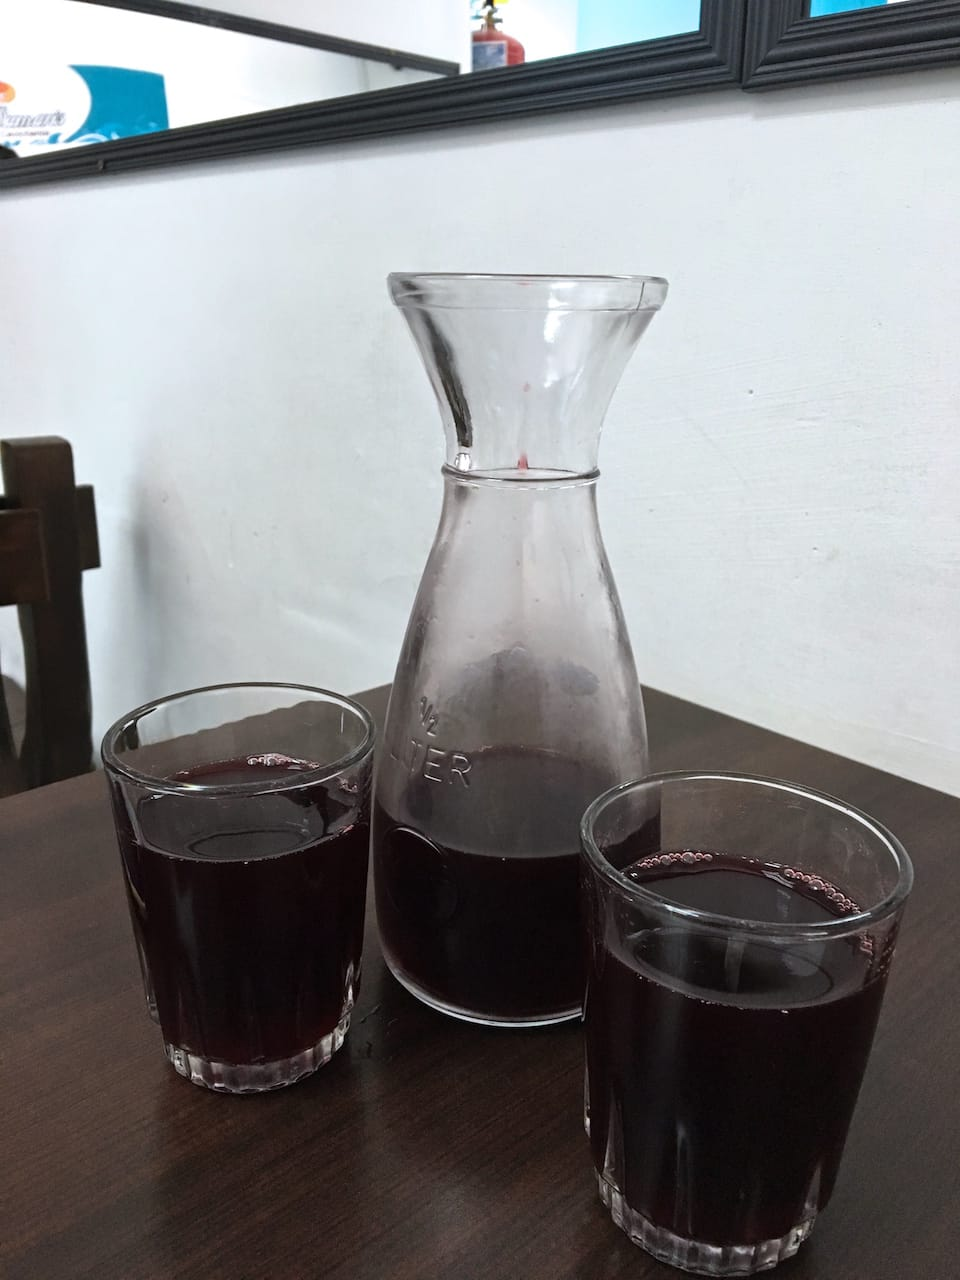 chicha morada one of the famous foods from peru